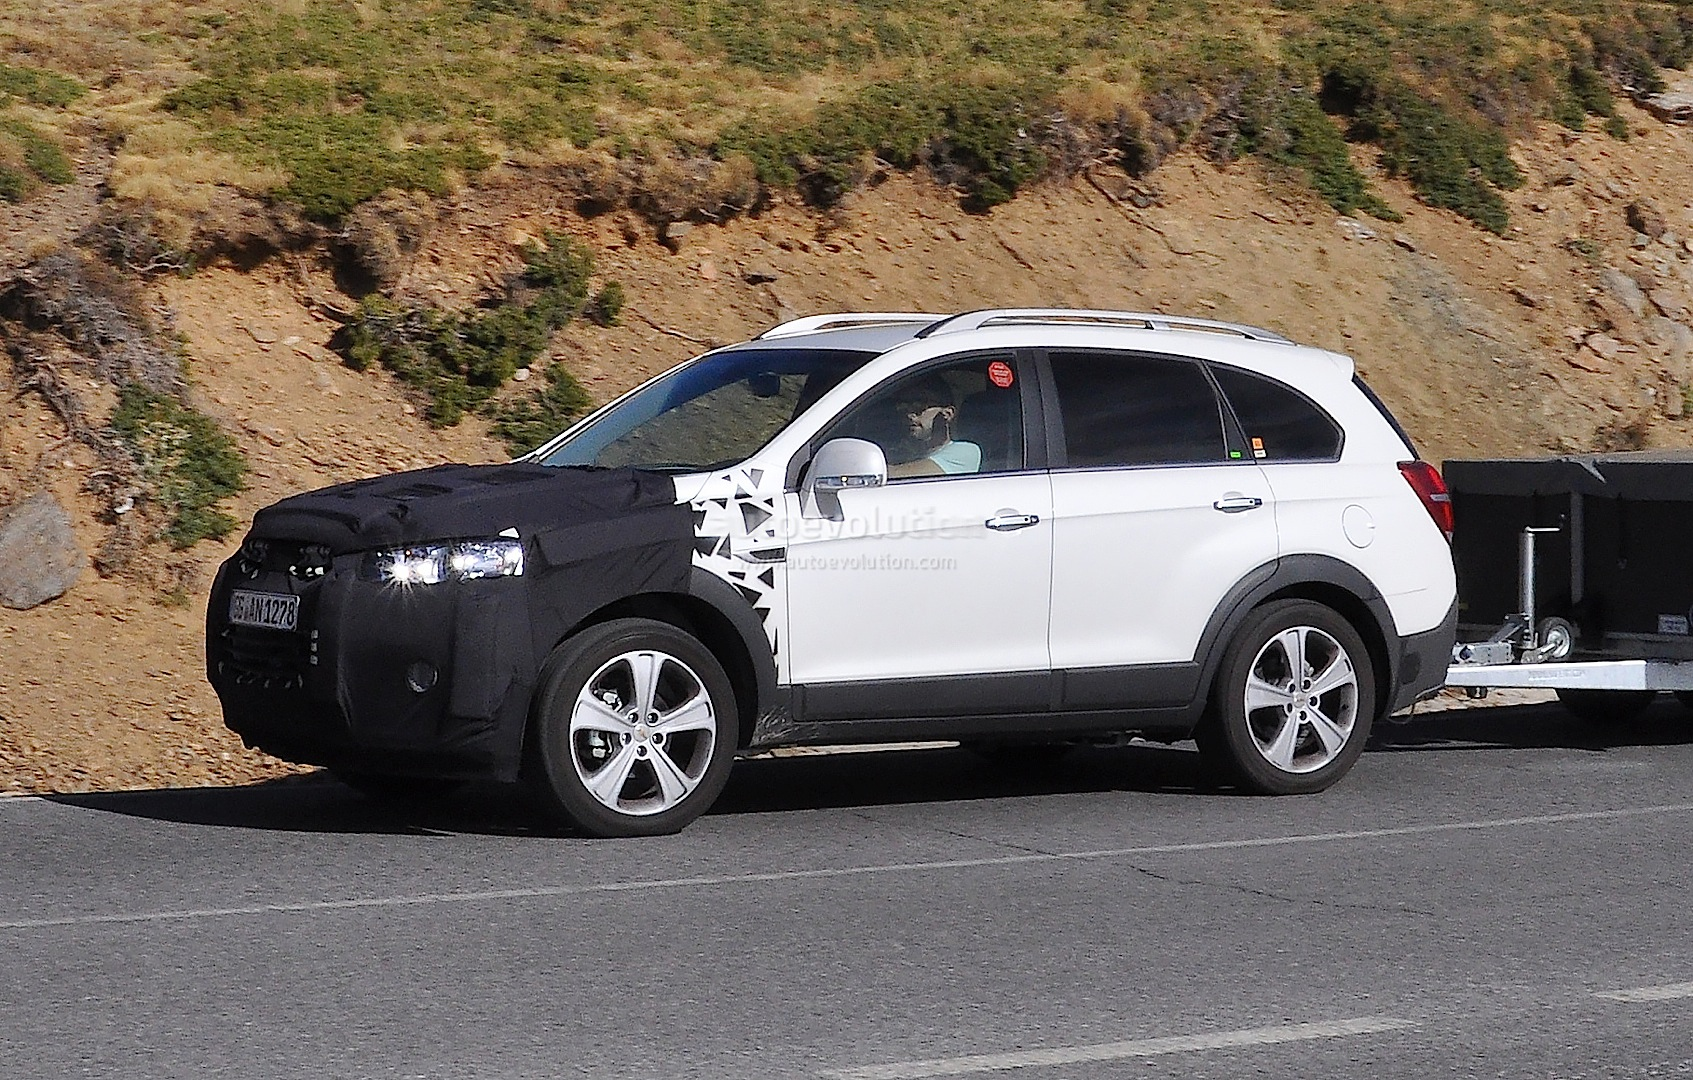 2015 Chevrolet Captiva Opel Antara Facelift Spied